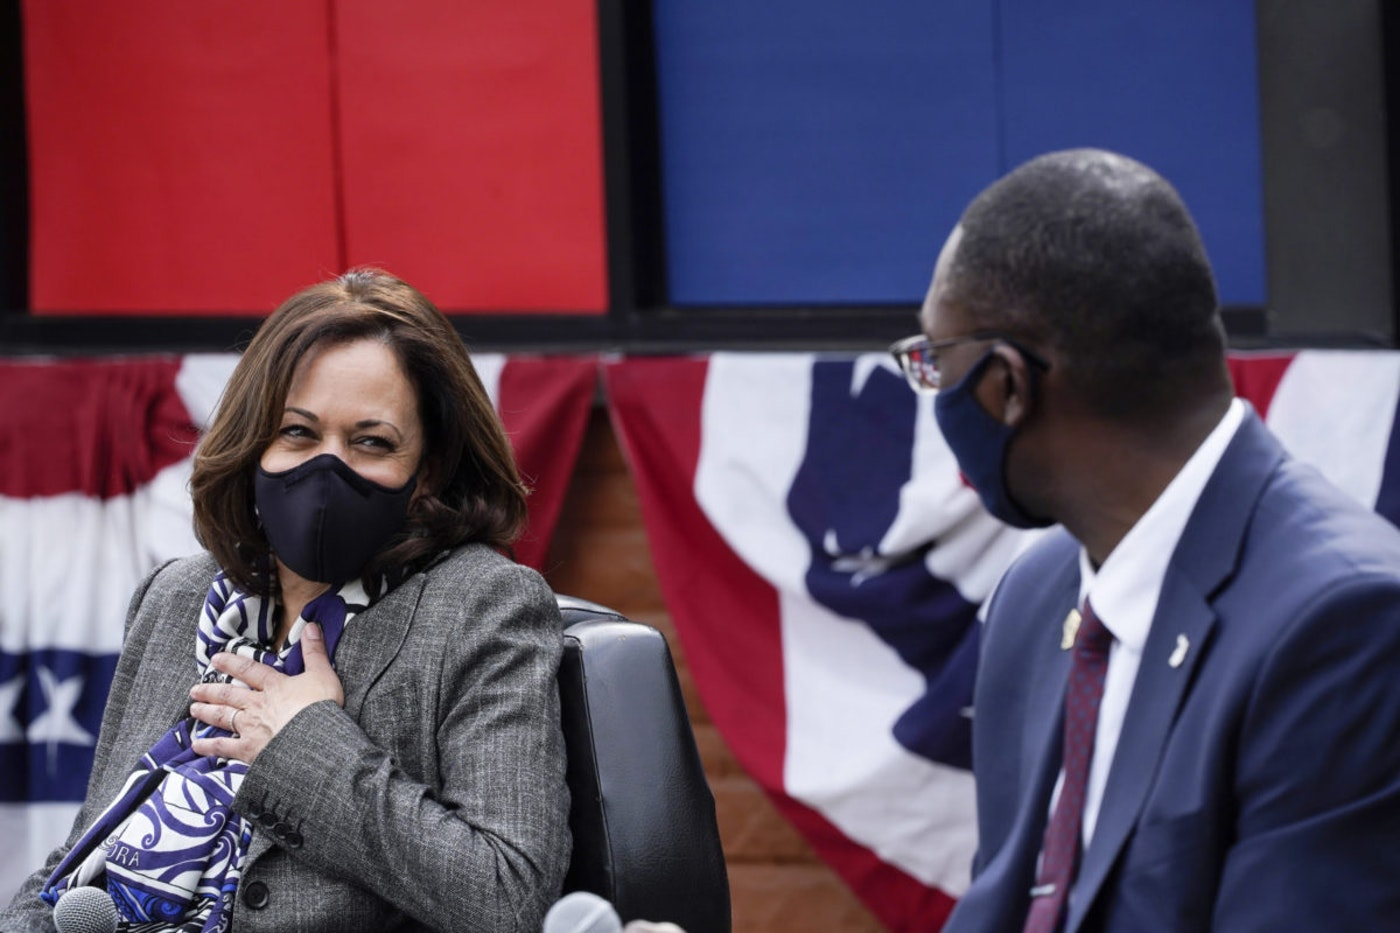 Democratic vice presidential candidate Sen. Kamala Harris, D-Calif., listens to Michigan Lt. Governor Garlin Gilchrist II at Headliners Barbershop in Detroit, Tuesday, Sept. 22, 2020. (AP Photo/Paul Sancya)